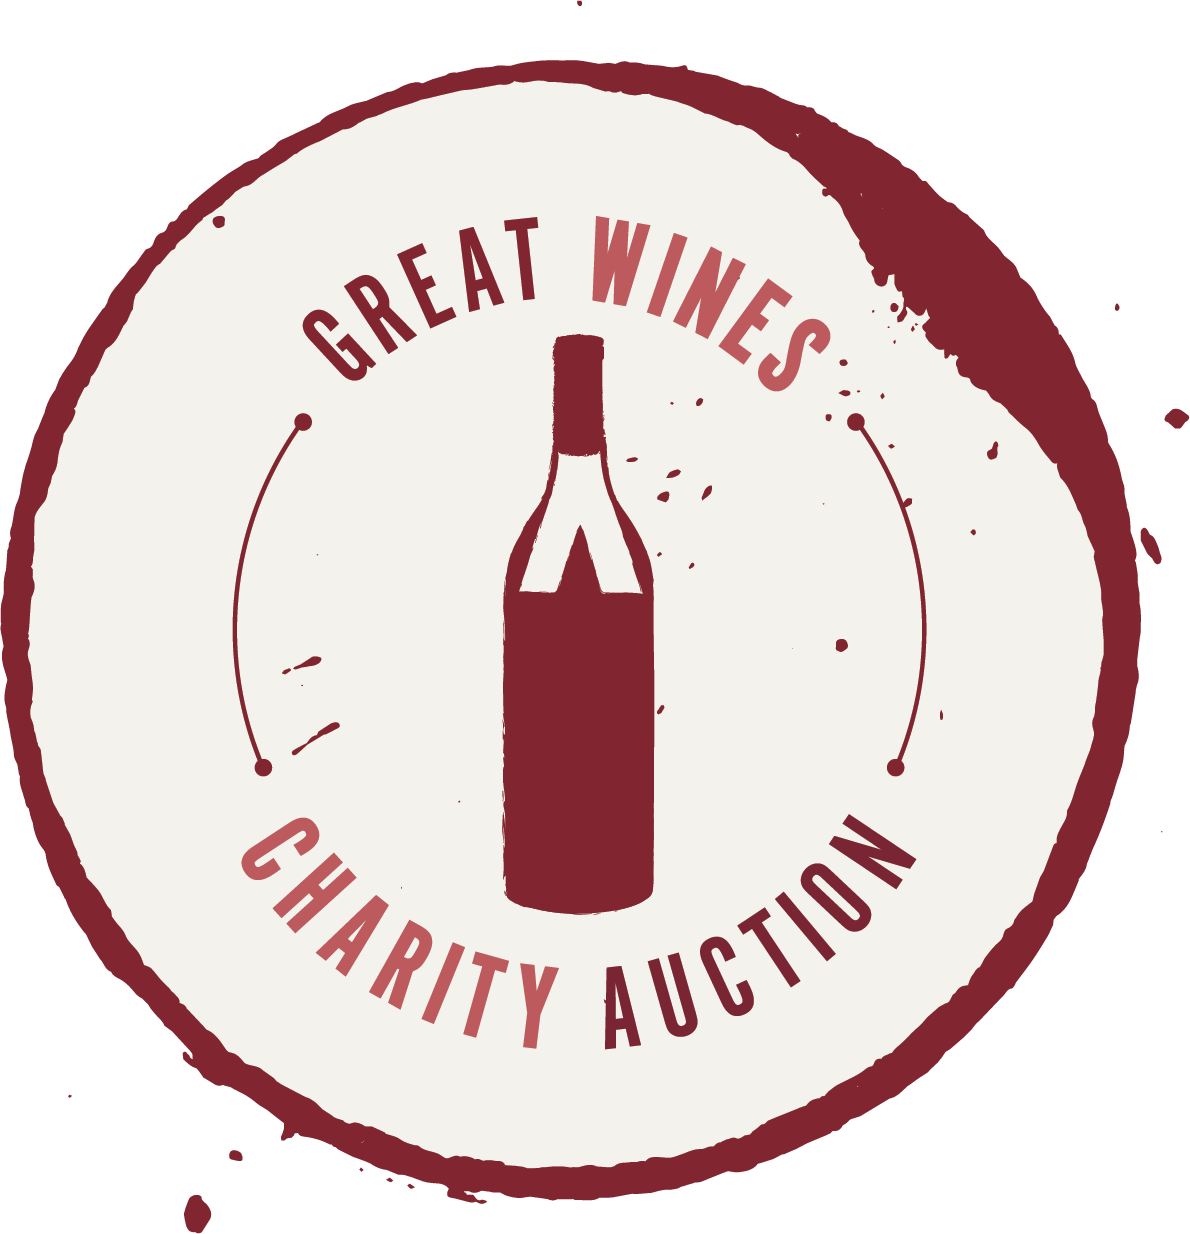 Great Wines Charity Auction